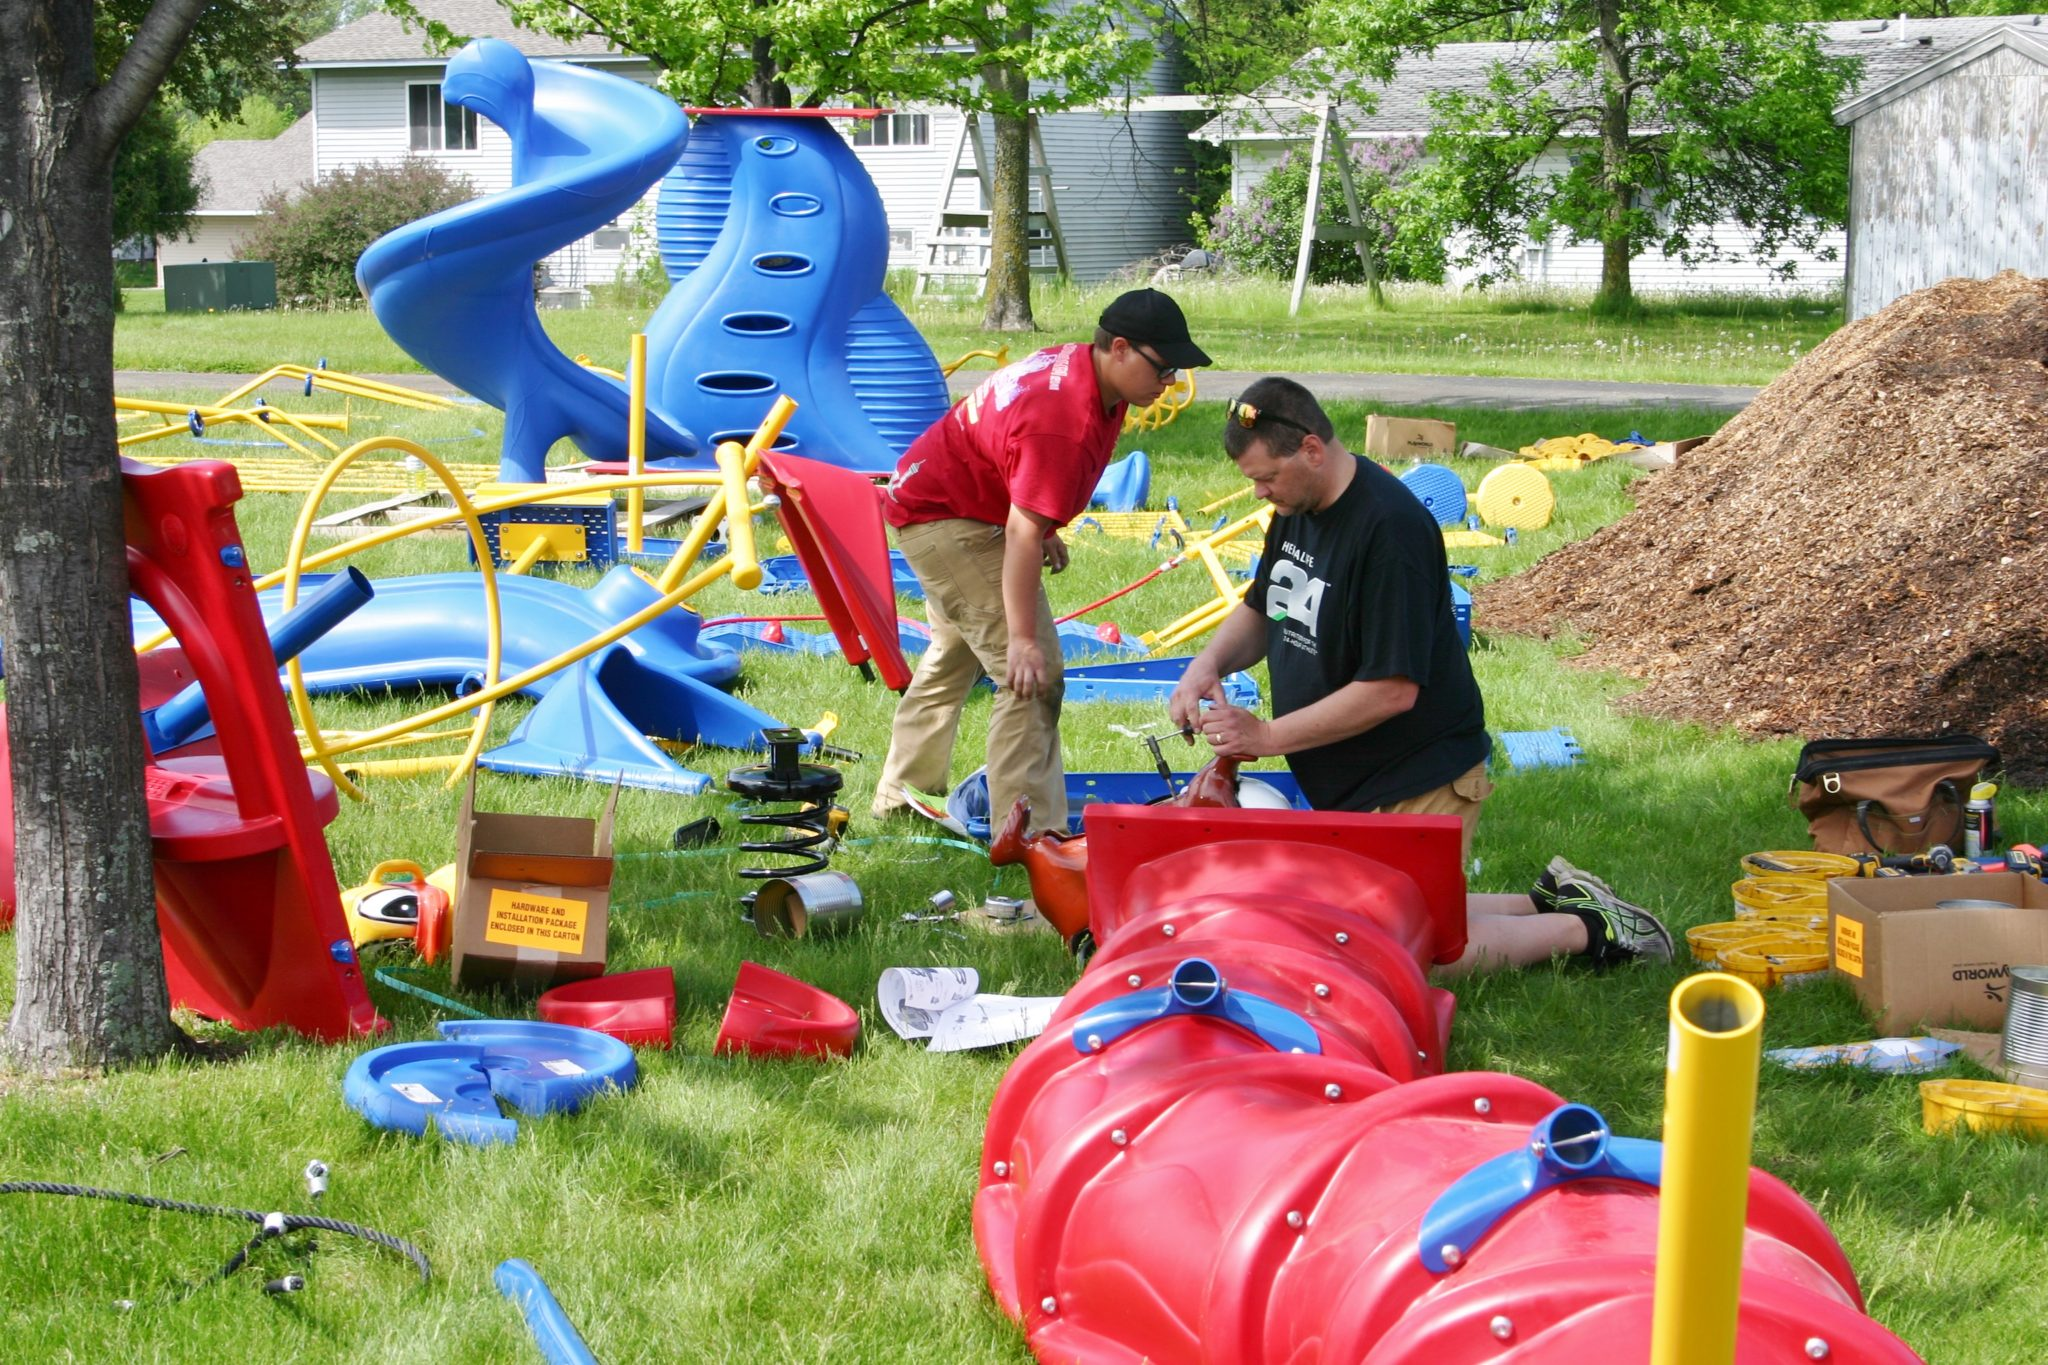 people building the playground equipment